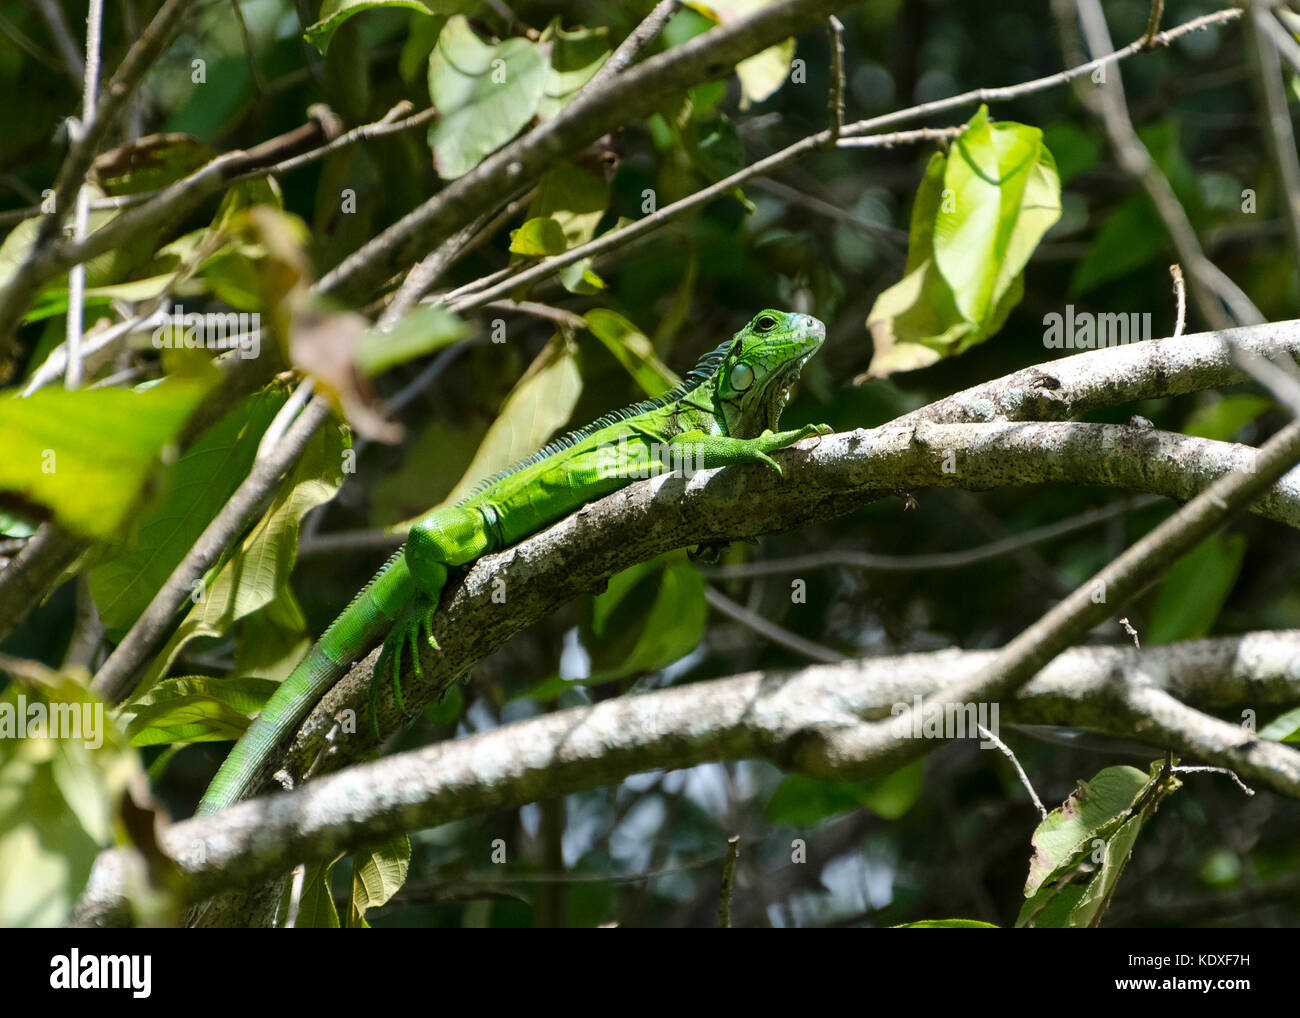 Green Iguana on a branch in the Northern Range Trinidad - Stock Image